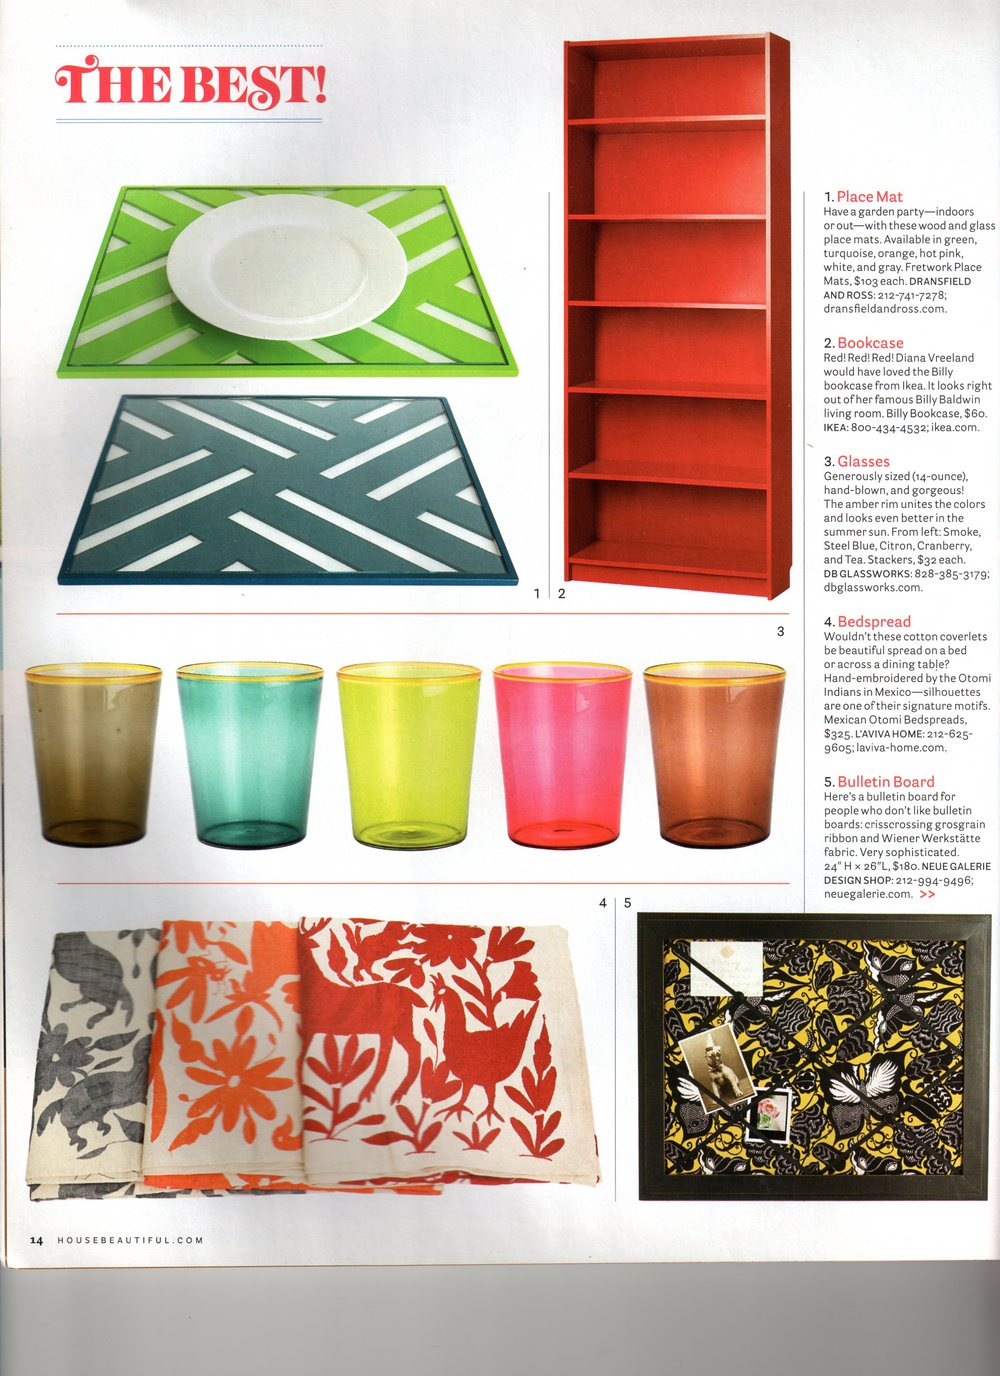 "House Beautiful, August 2009 ""The Best!"" section, page 14."